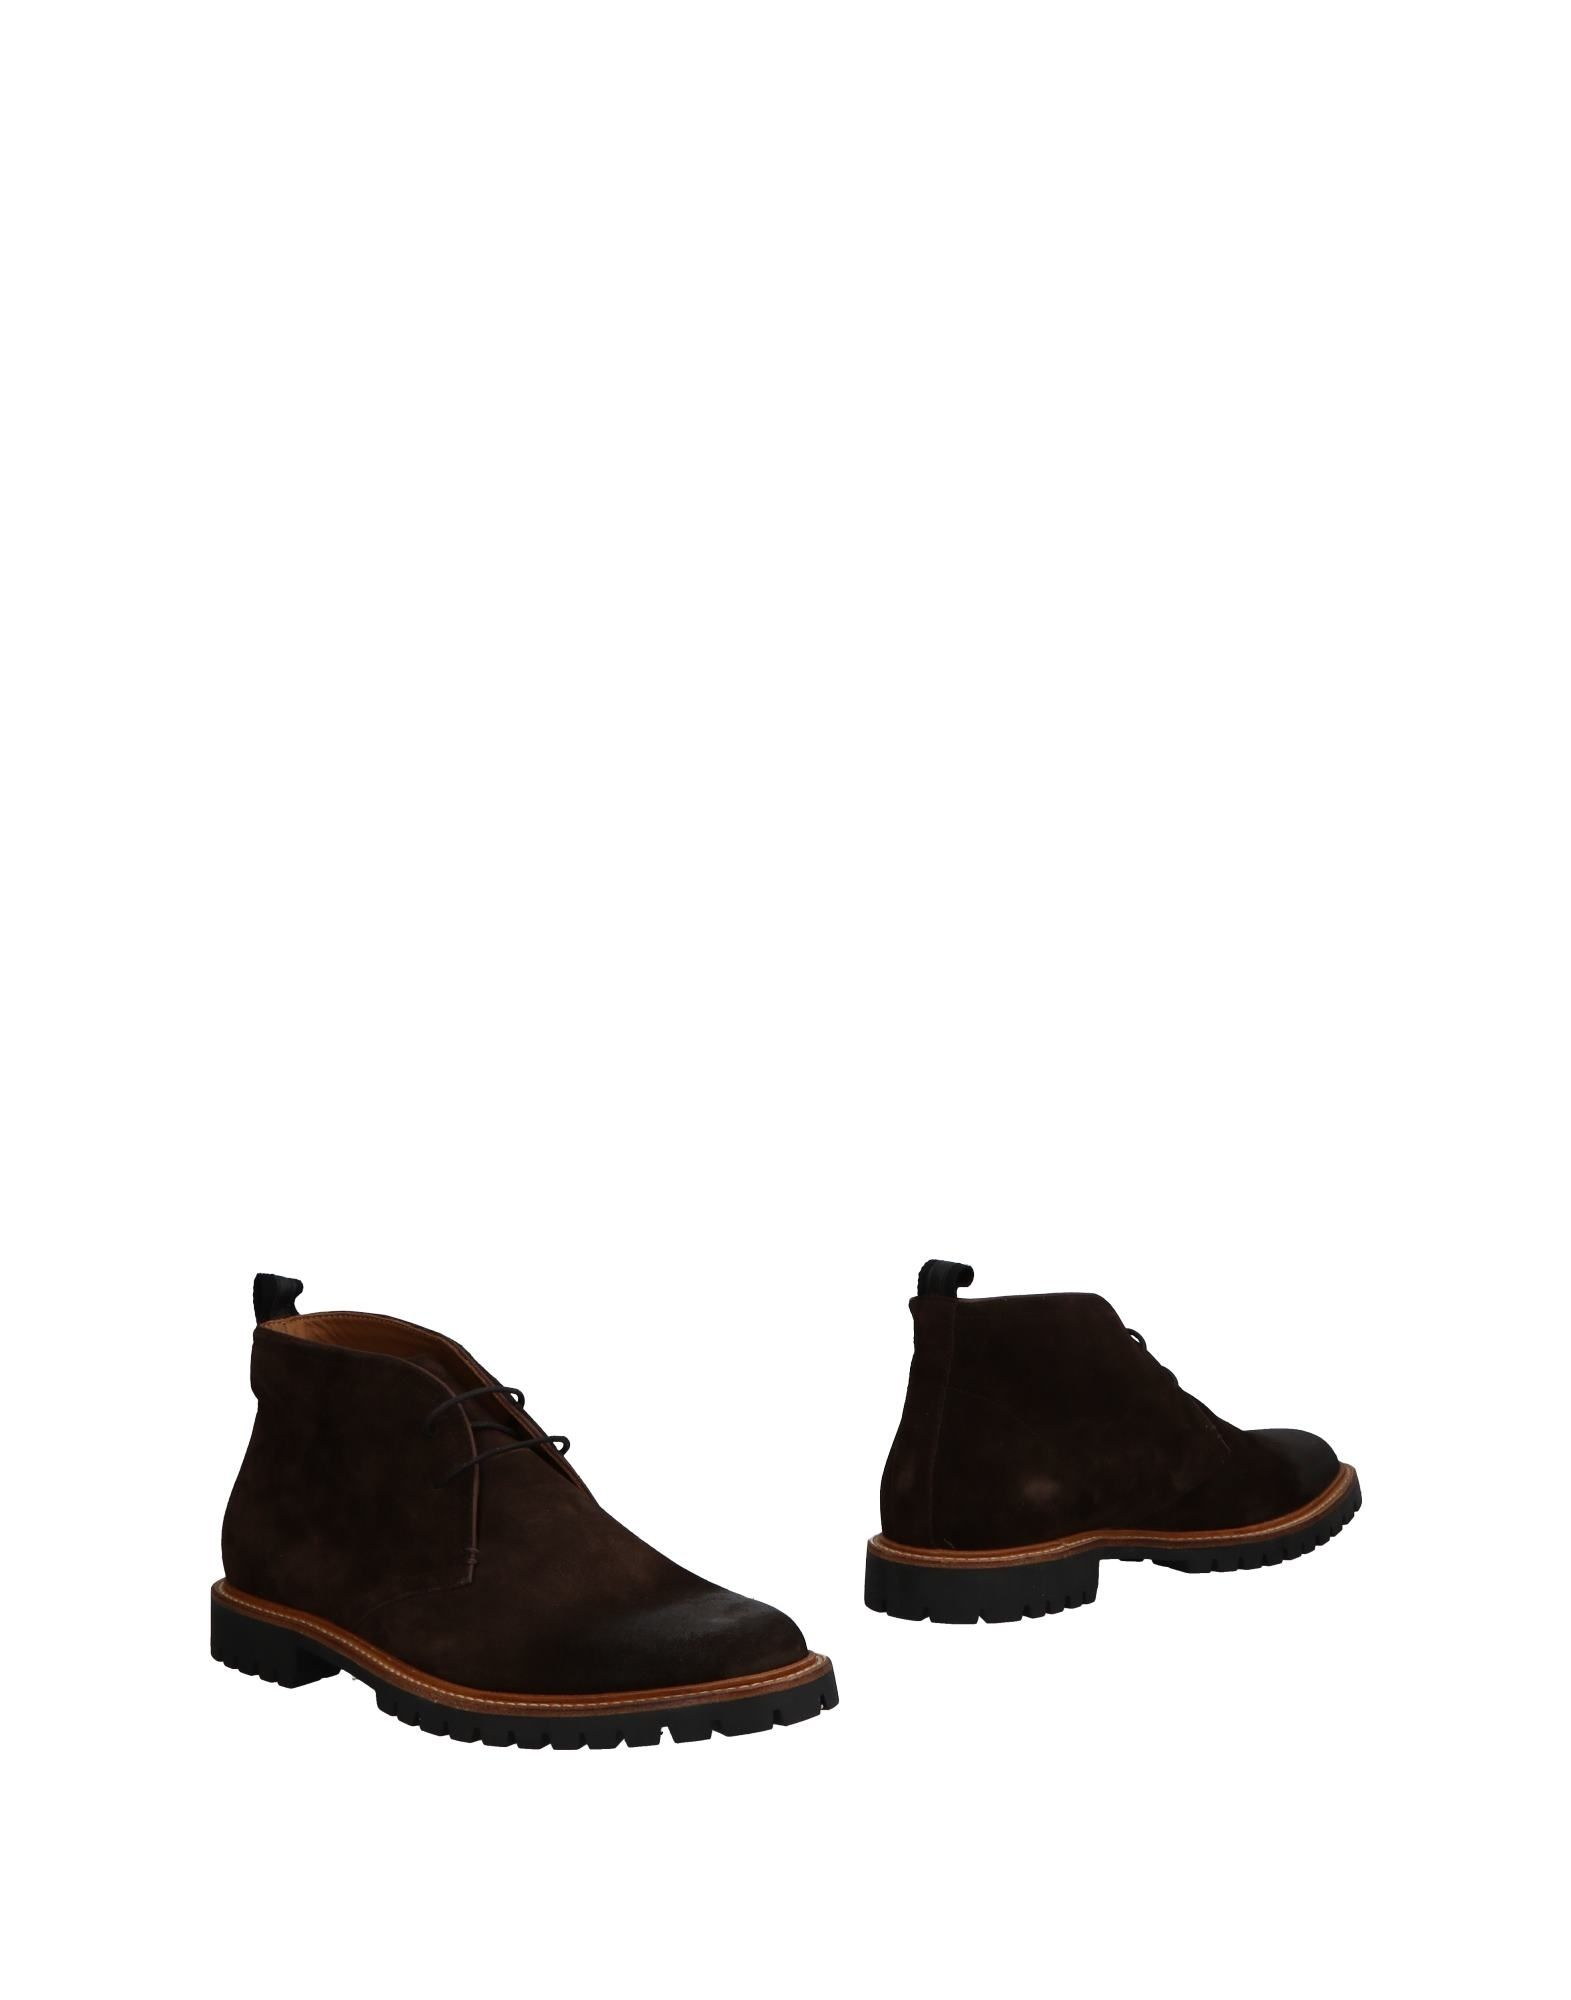 VOILE BLANCHE Ankle Boots in Dark Brown